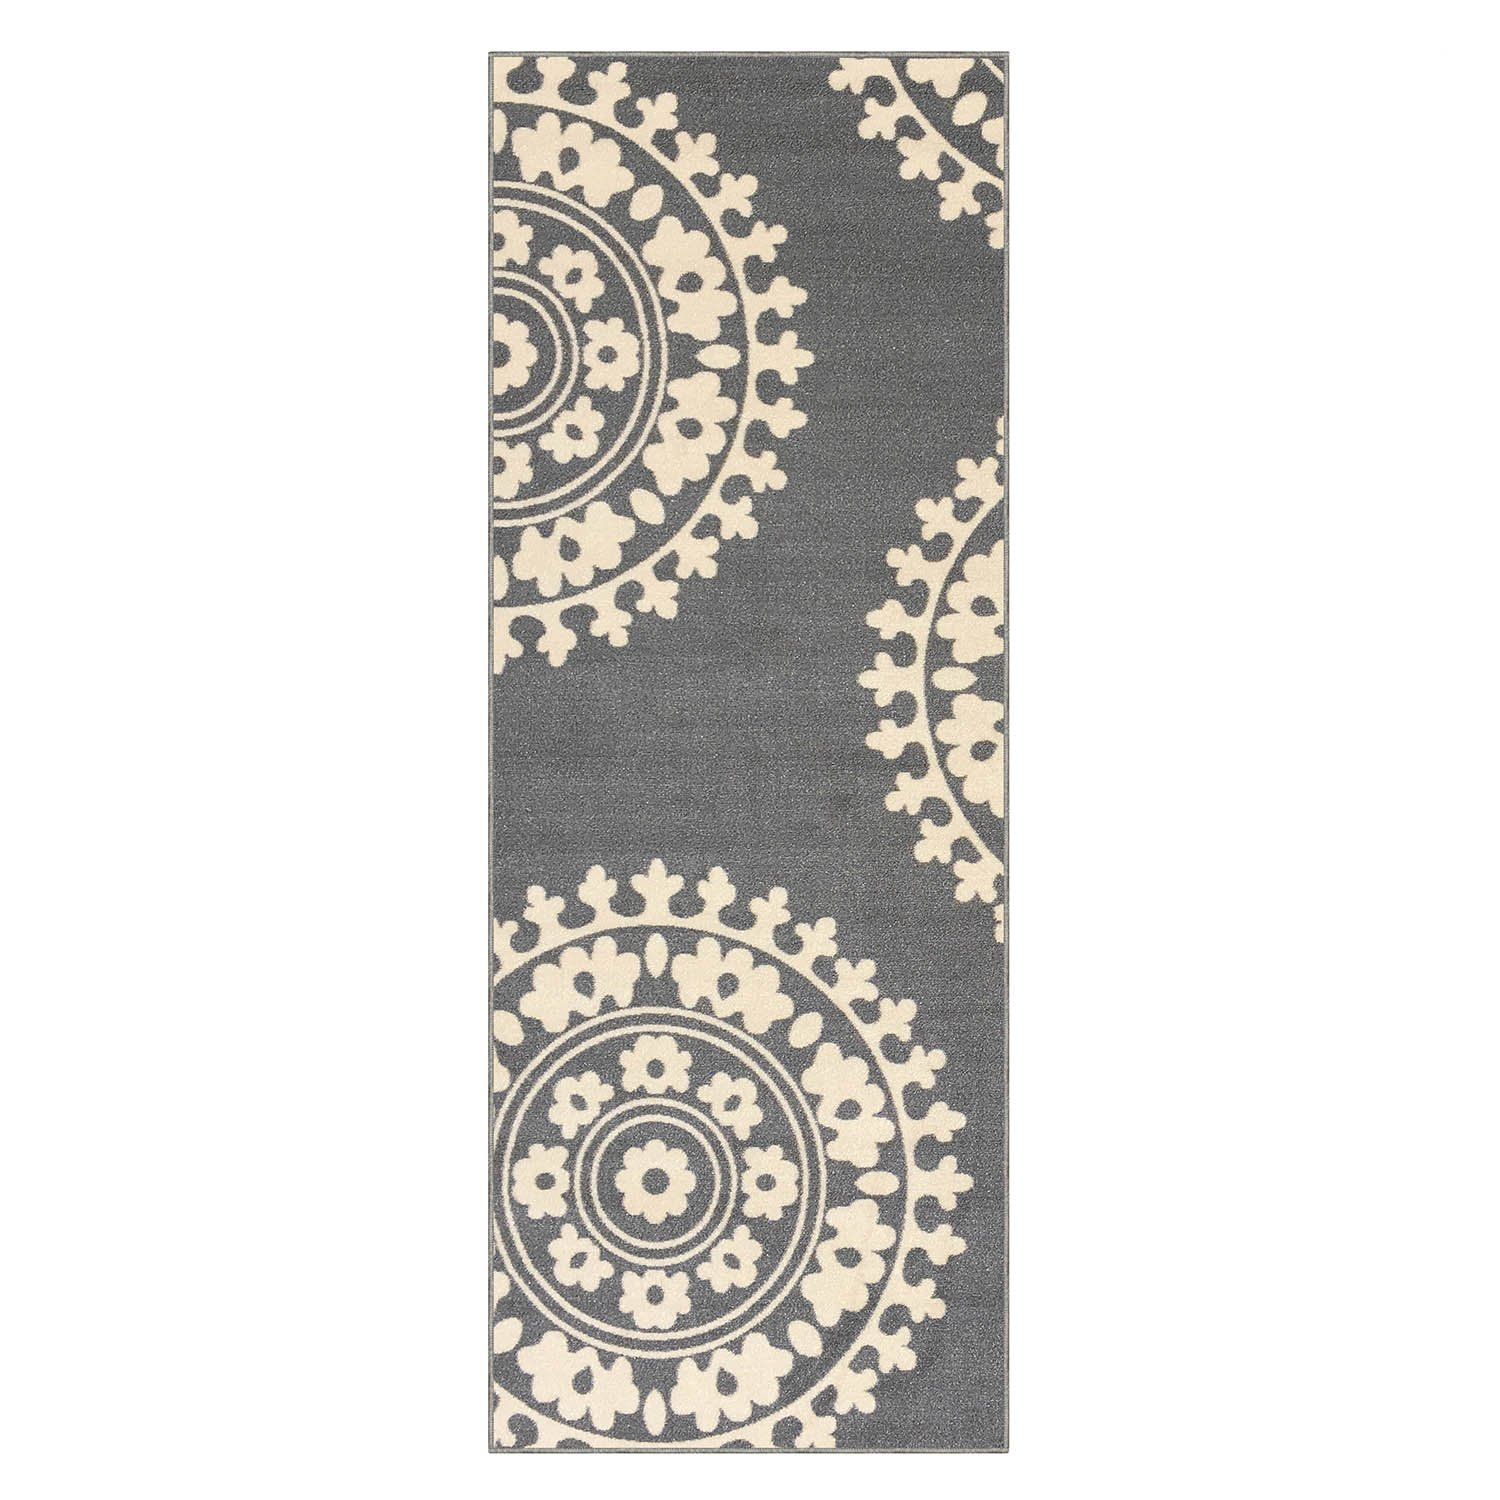 2'2'' X 6' Rubber Backed Non Slip Kitchen/Hallway / Entryway Runner Rug, Medallion Grey by Qute Home